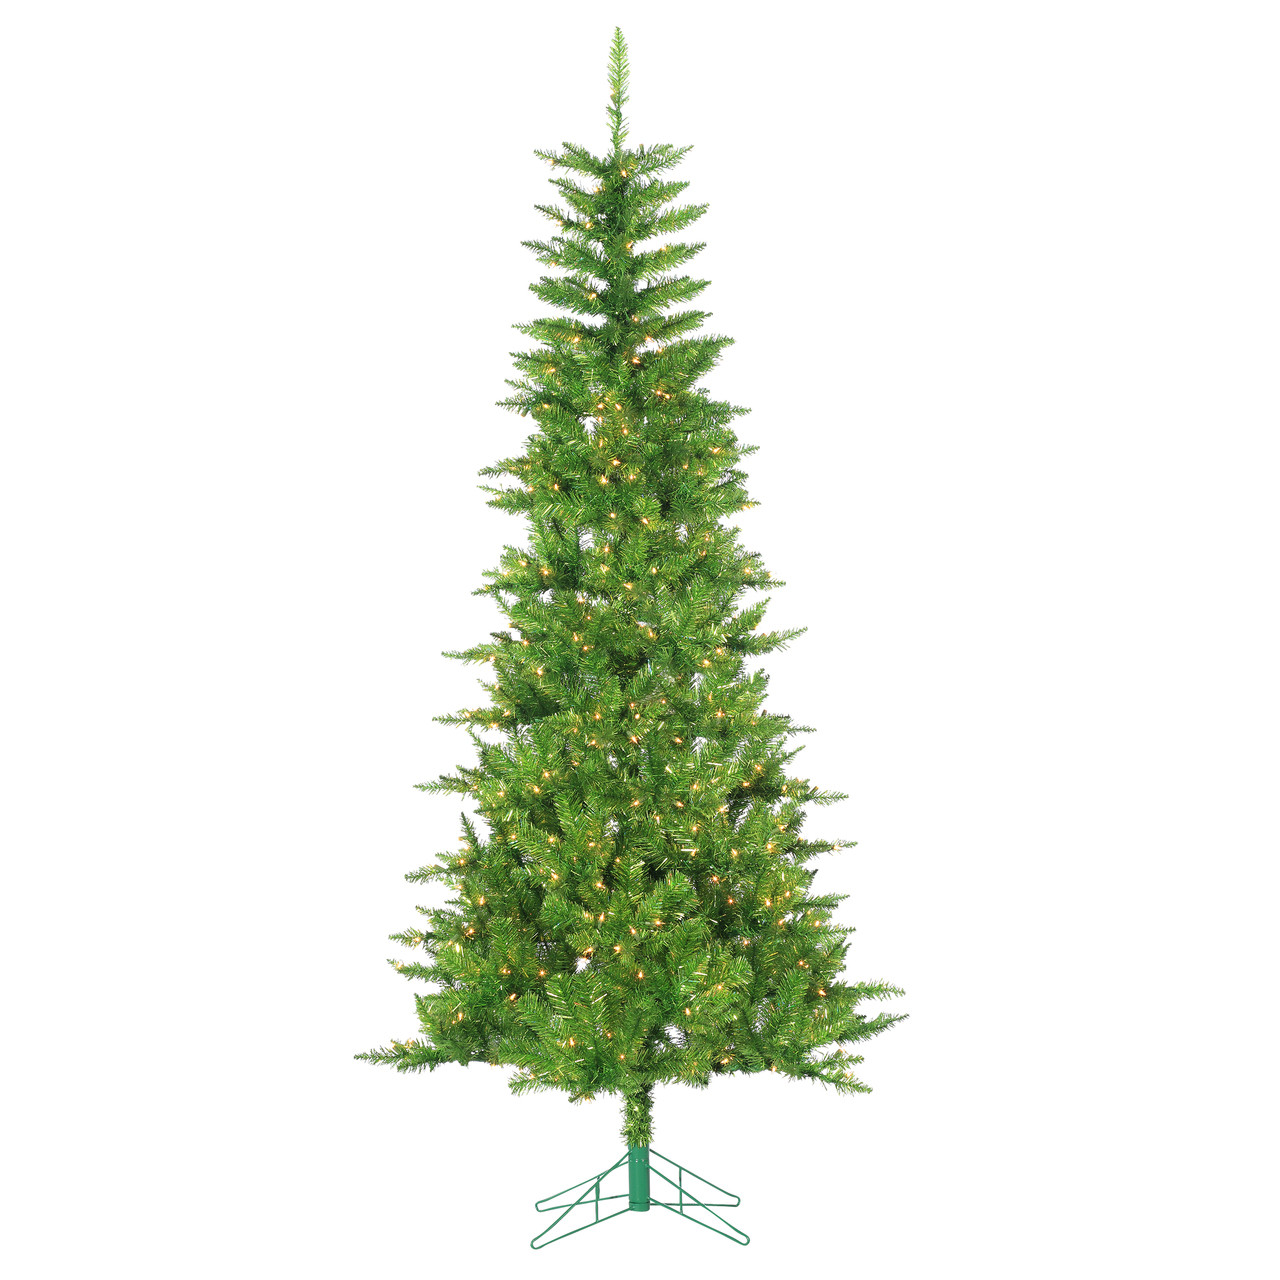 Tinsel Christmas Tree.7 5 Green Tuscany Tinsel Artificial Christmas Tree 6036 75lg